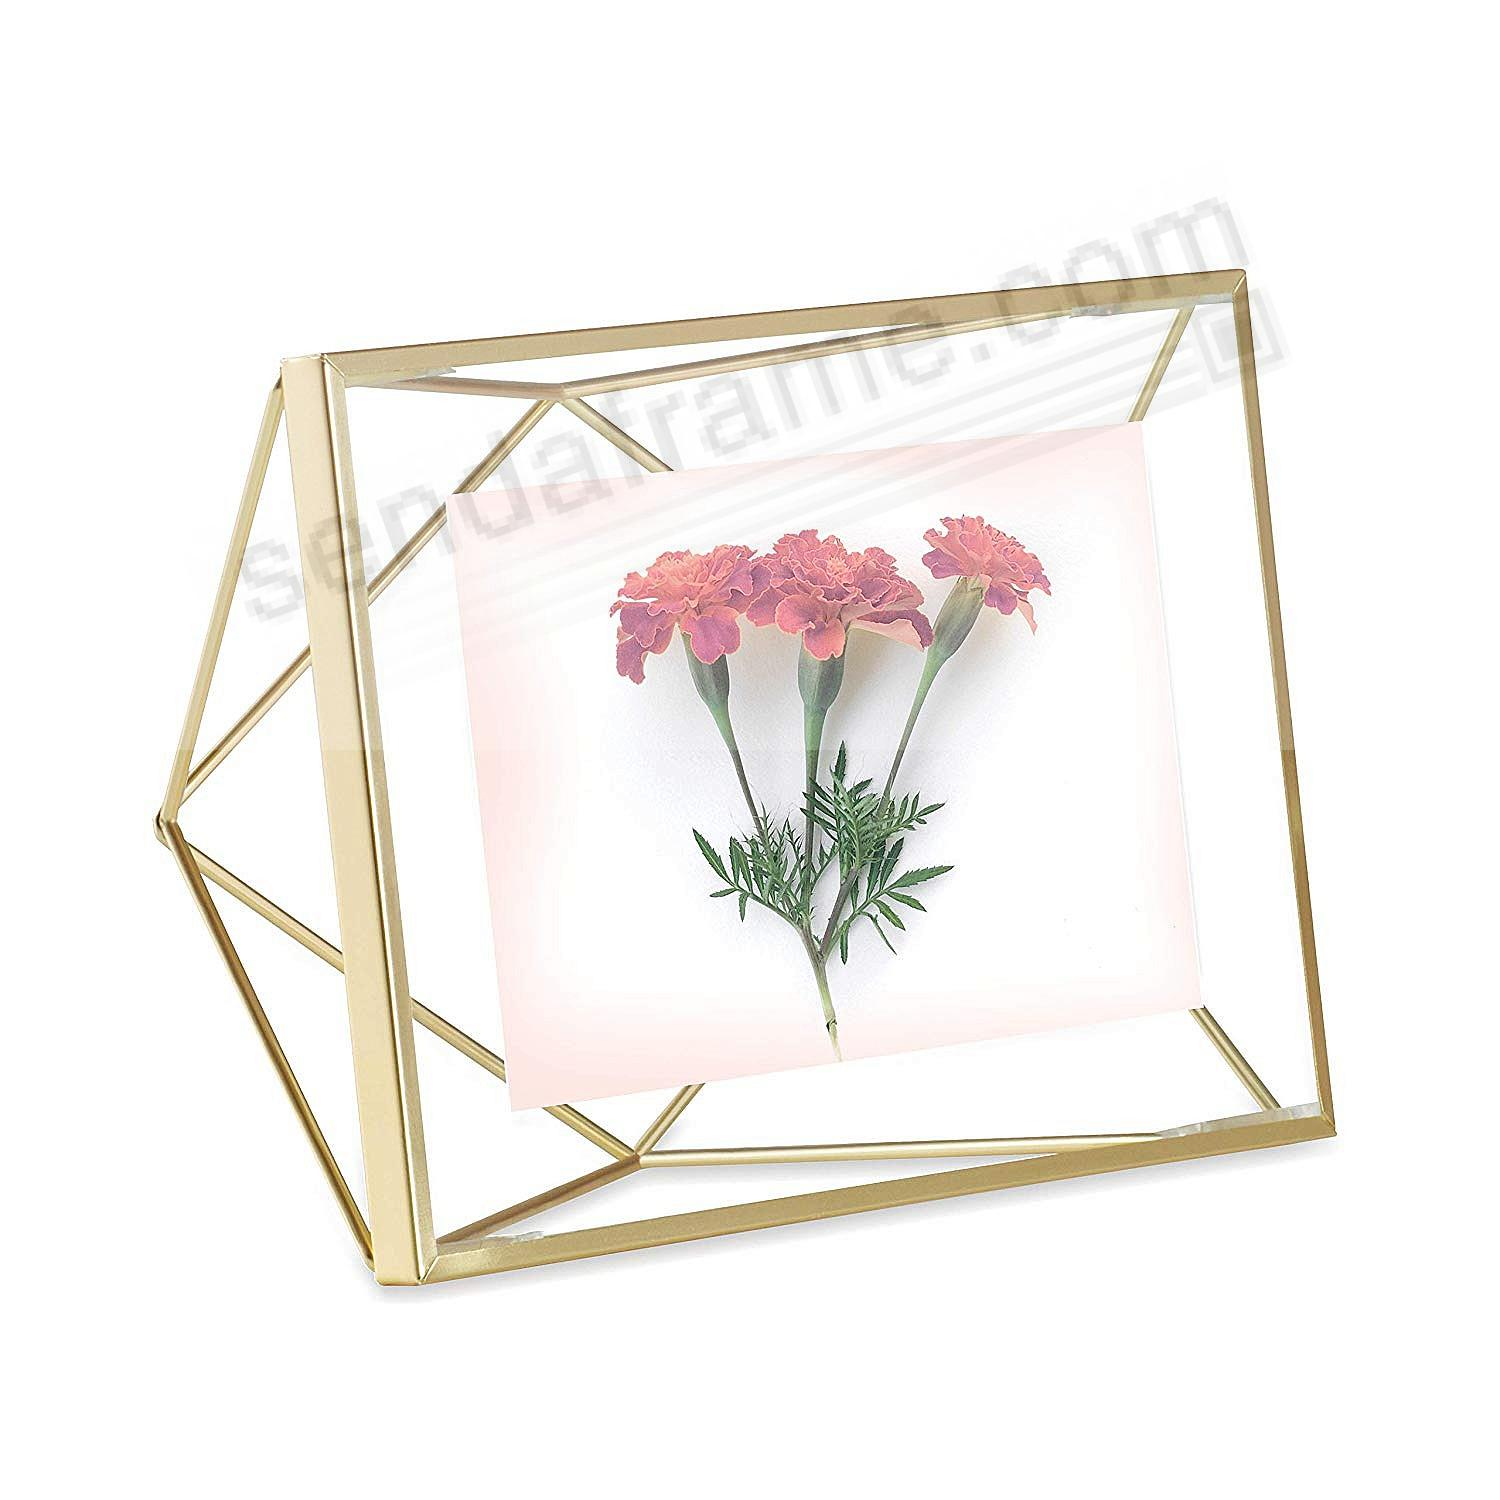 The Original PRISMA Photo Display Brass 4x6 frame by Umbra®